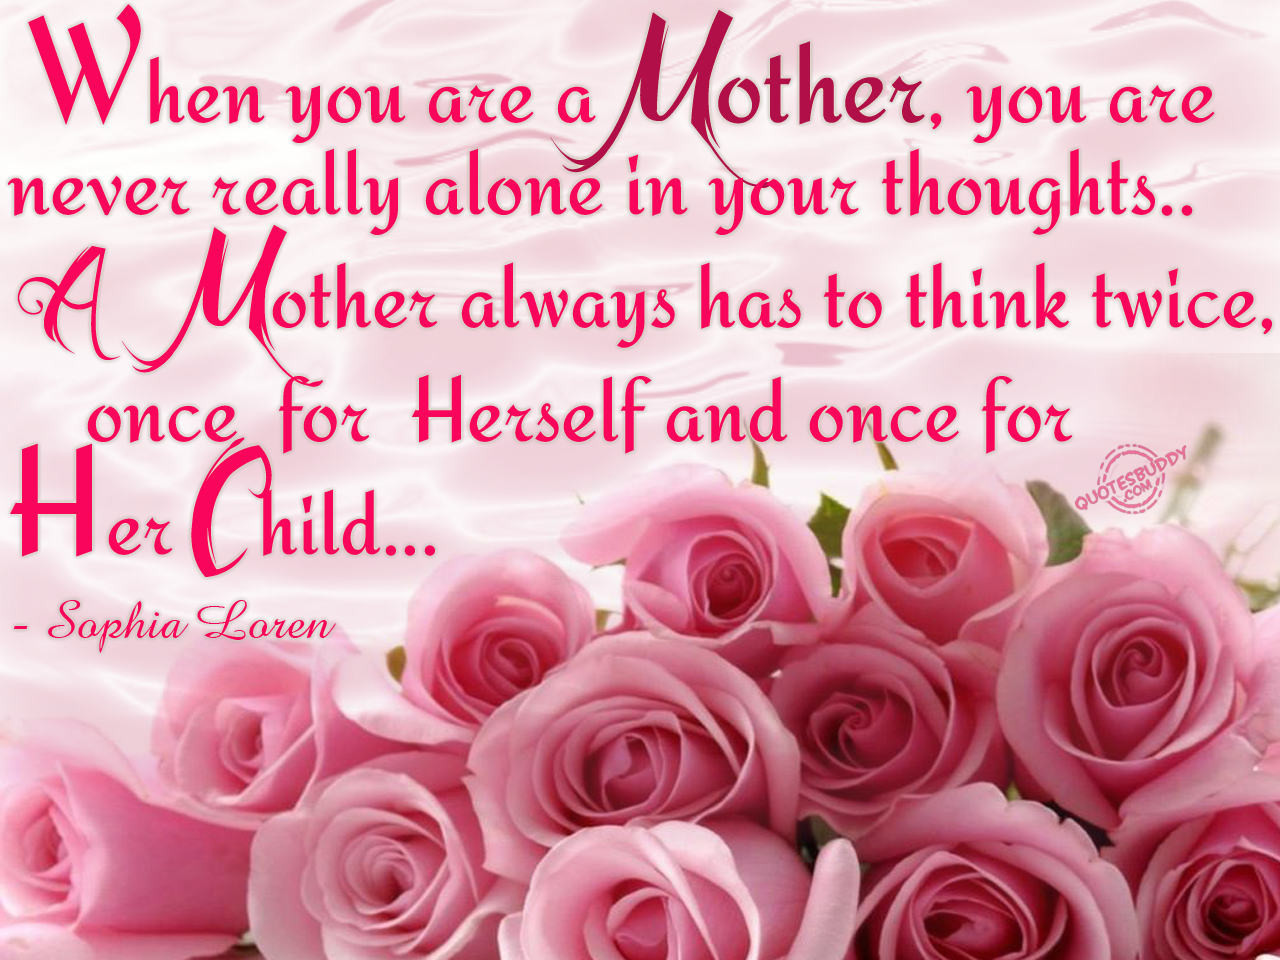 Quotes On Mothers And Daughters  Mama In Spanish Quotes QuotesGram